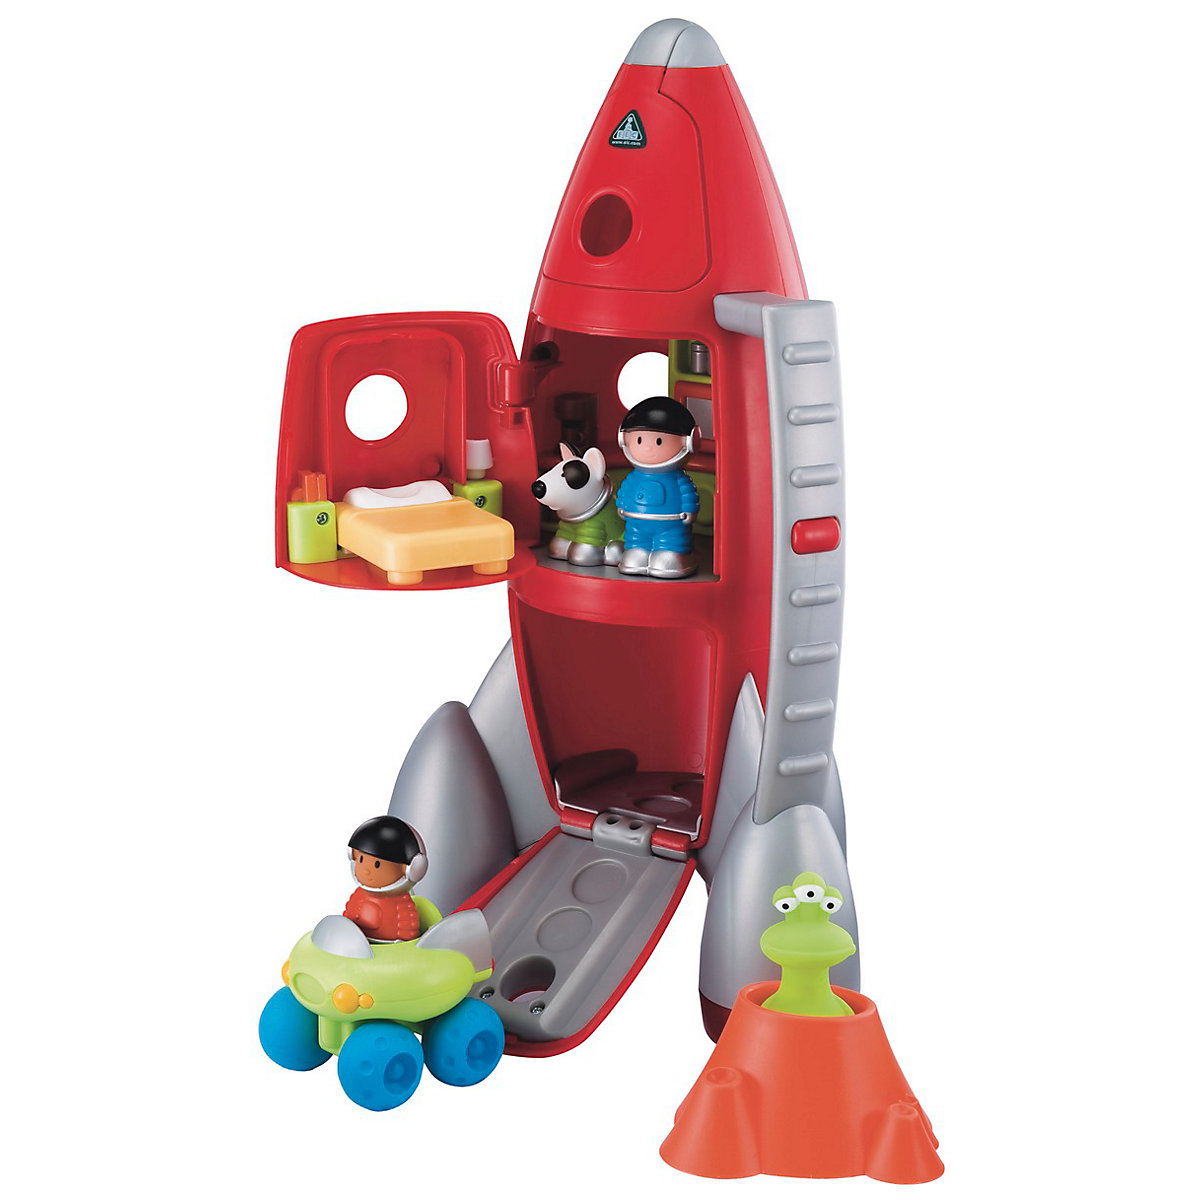 New HappyLand Boys and Girls Lift Off Rocket Playset Toy From 18 months